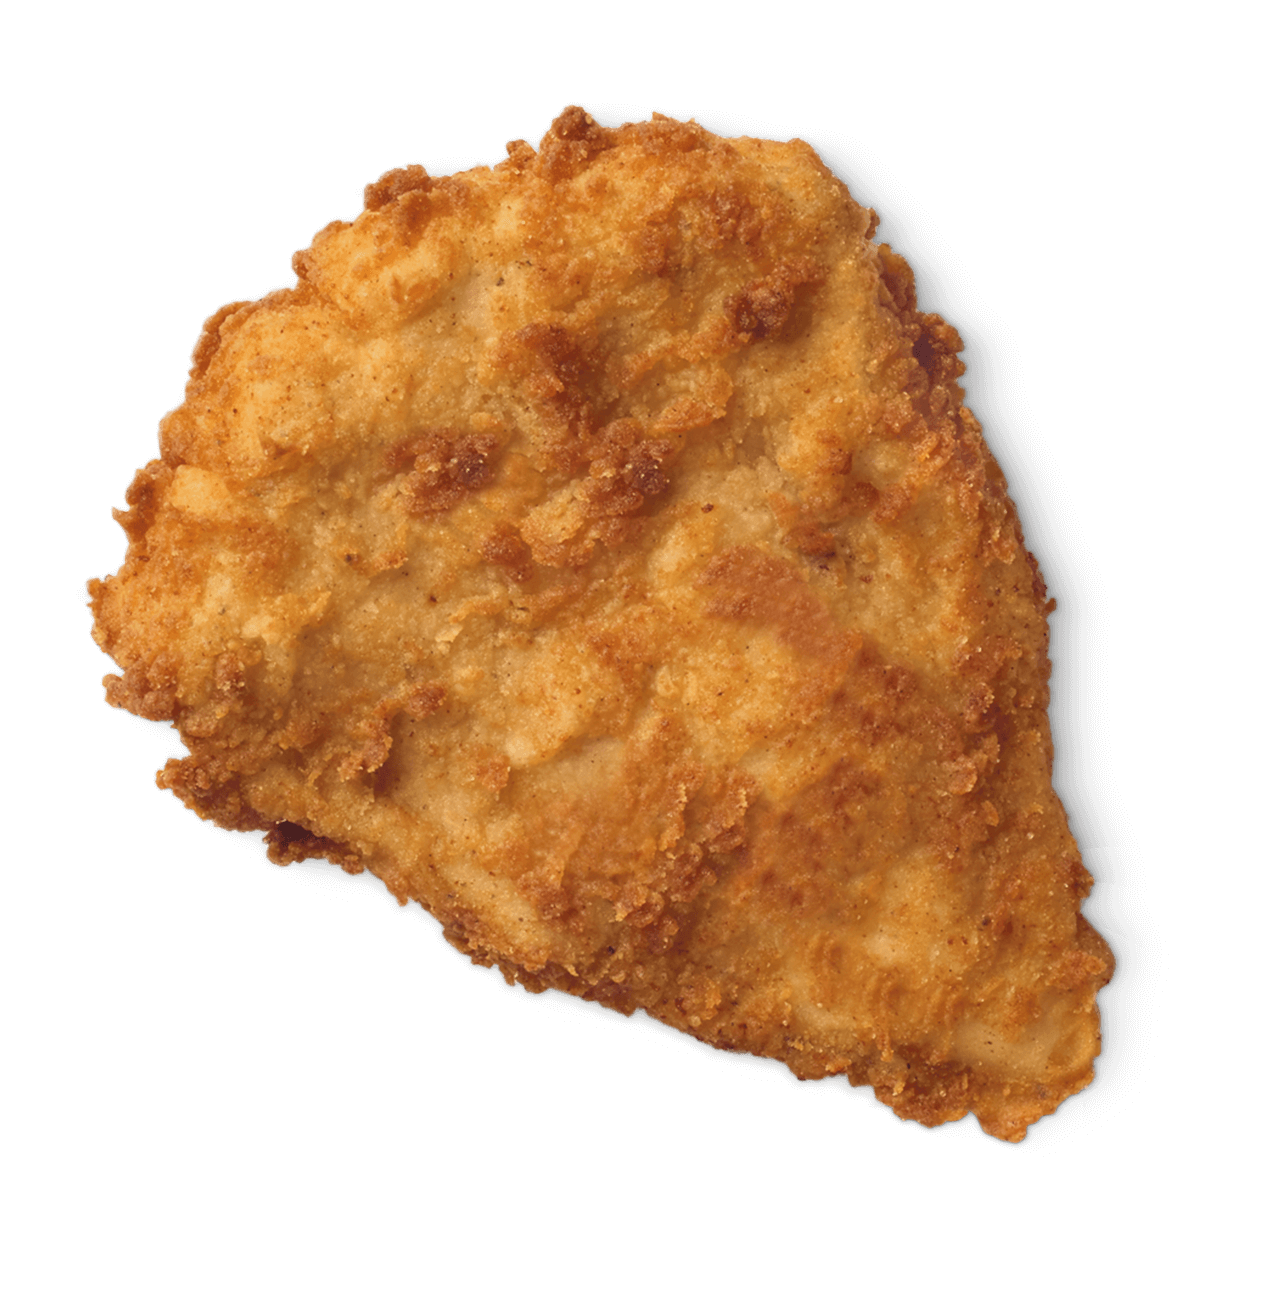 Butter King Sandwich Burger Schnitzel Chicken Fried PNG Image